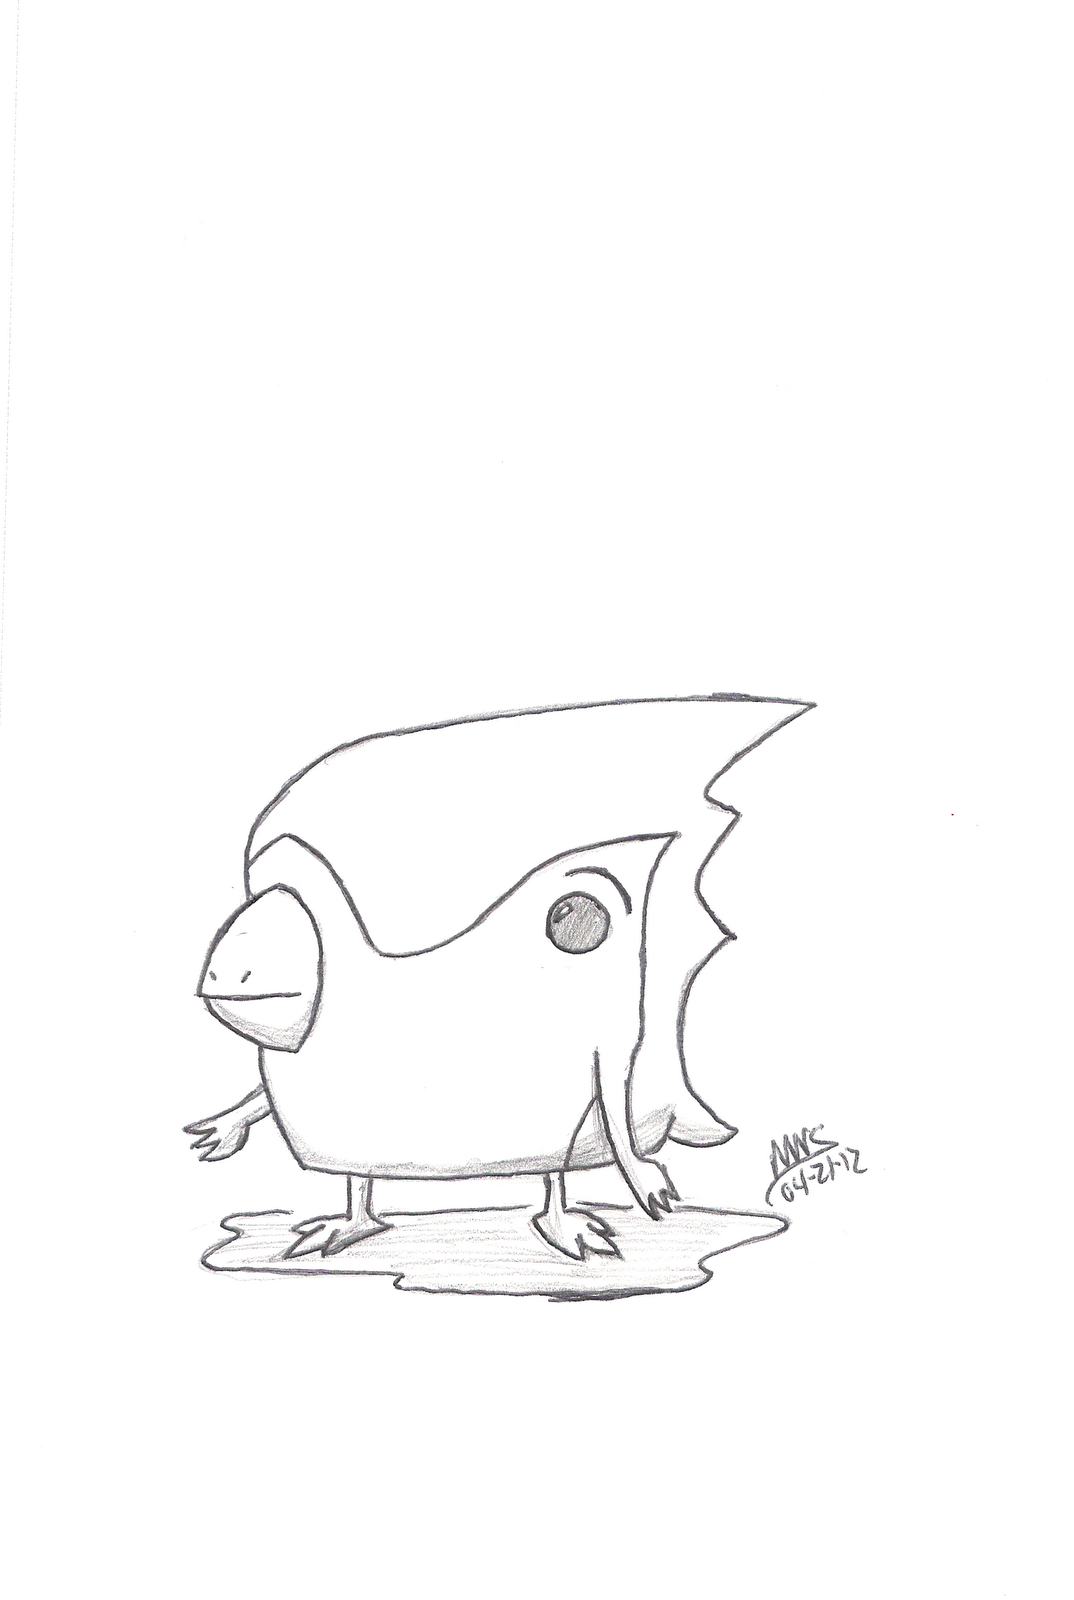 az cardinals coloring pages - photo #10